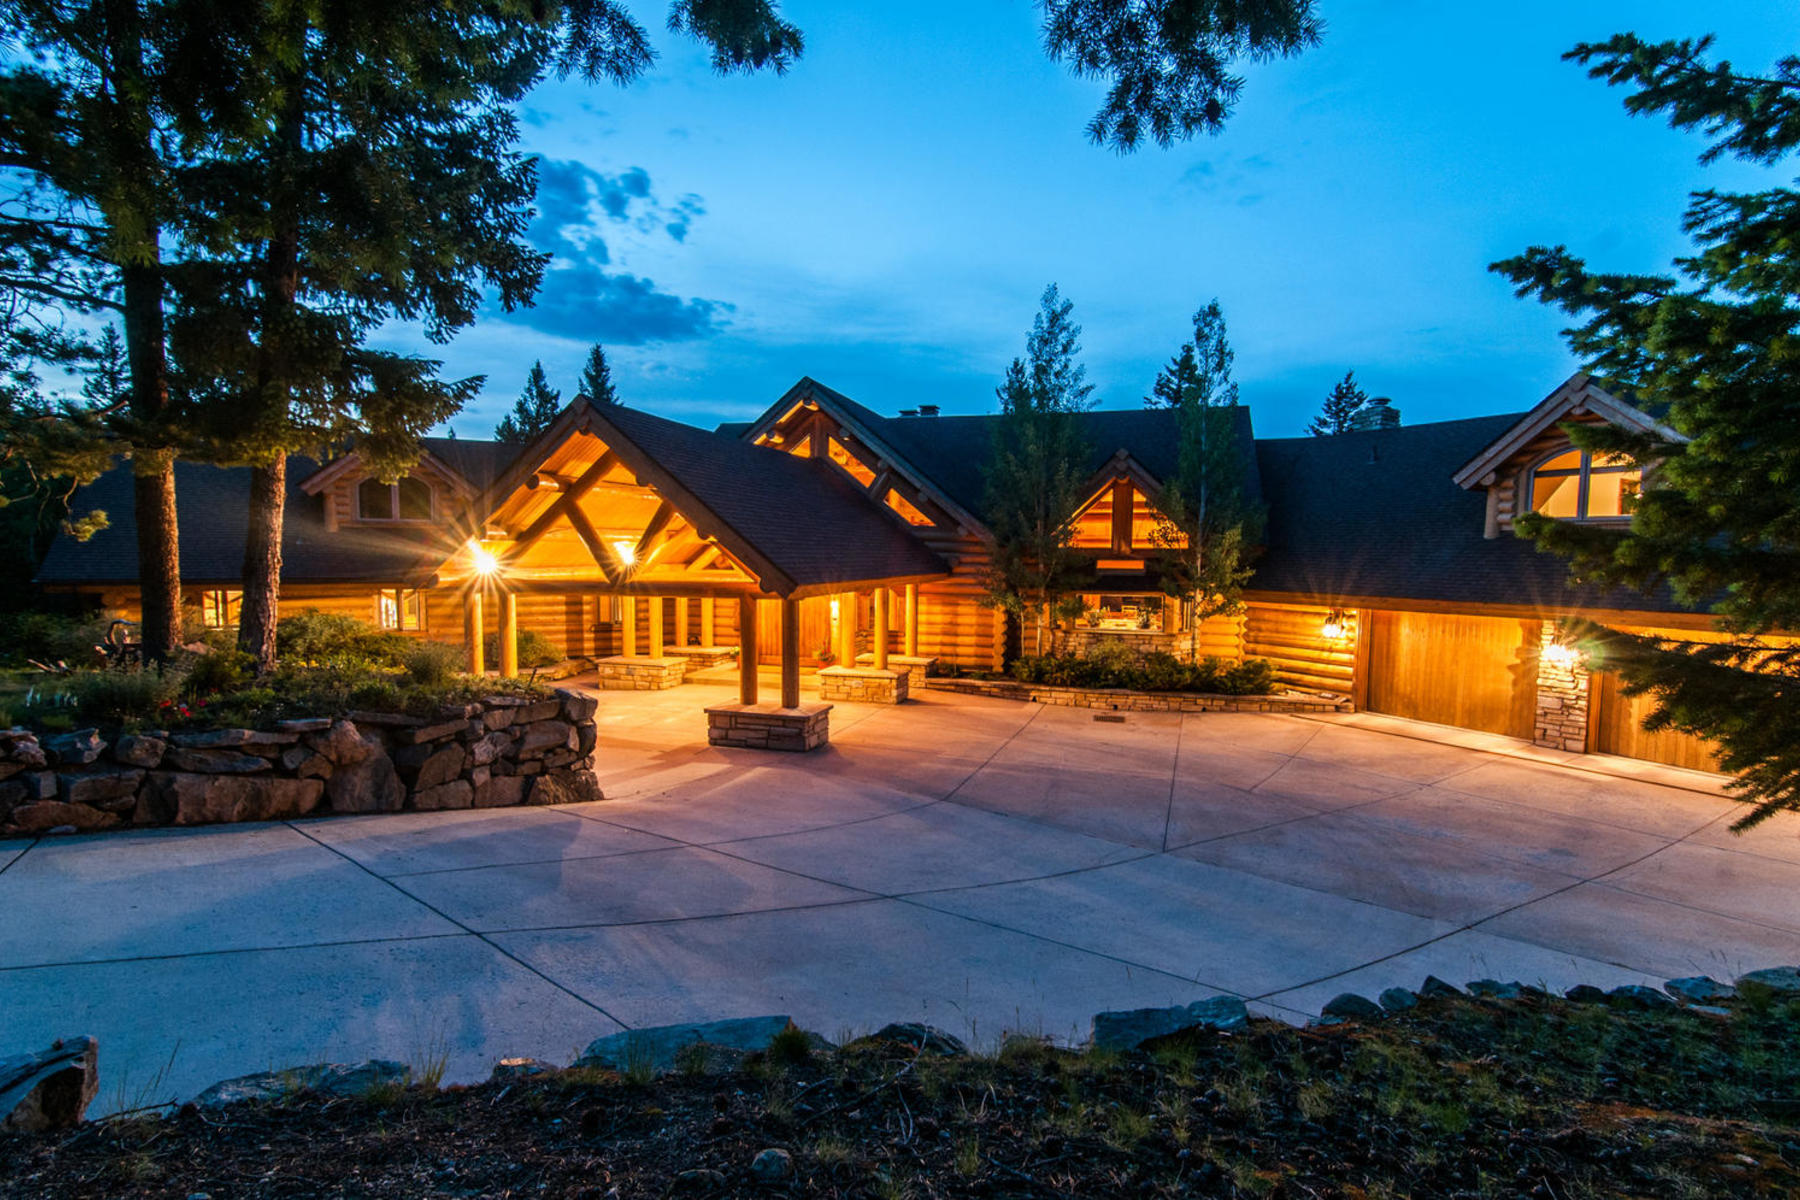 Single Family Homes for Sale at Tranquil Mountain Estate Artfully and Privately Located 590 West Meadow Road Evergreen, Colorado 80439 United States